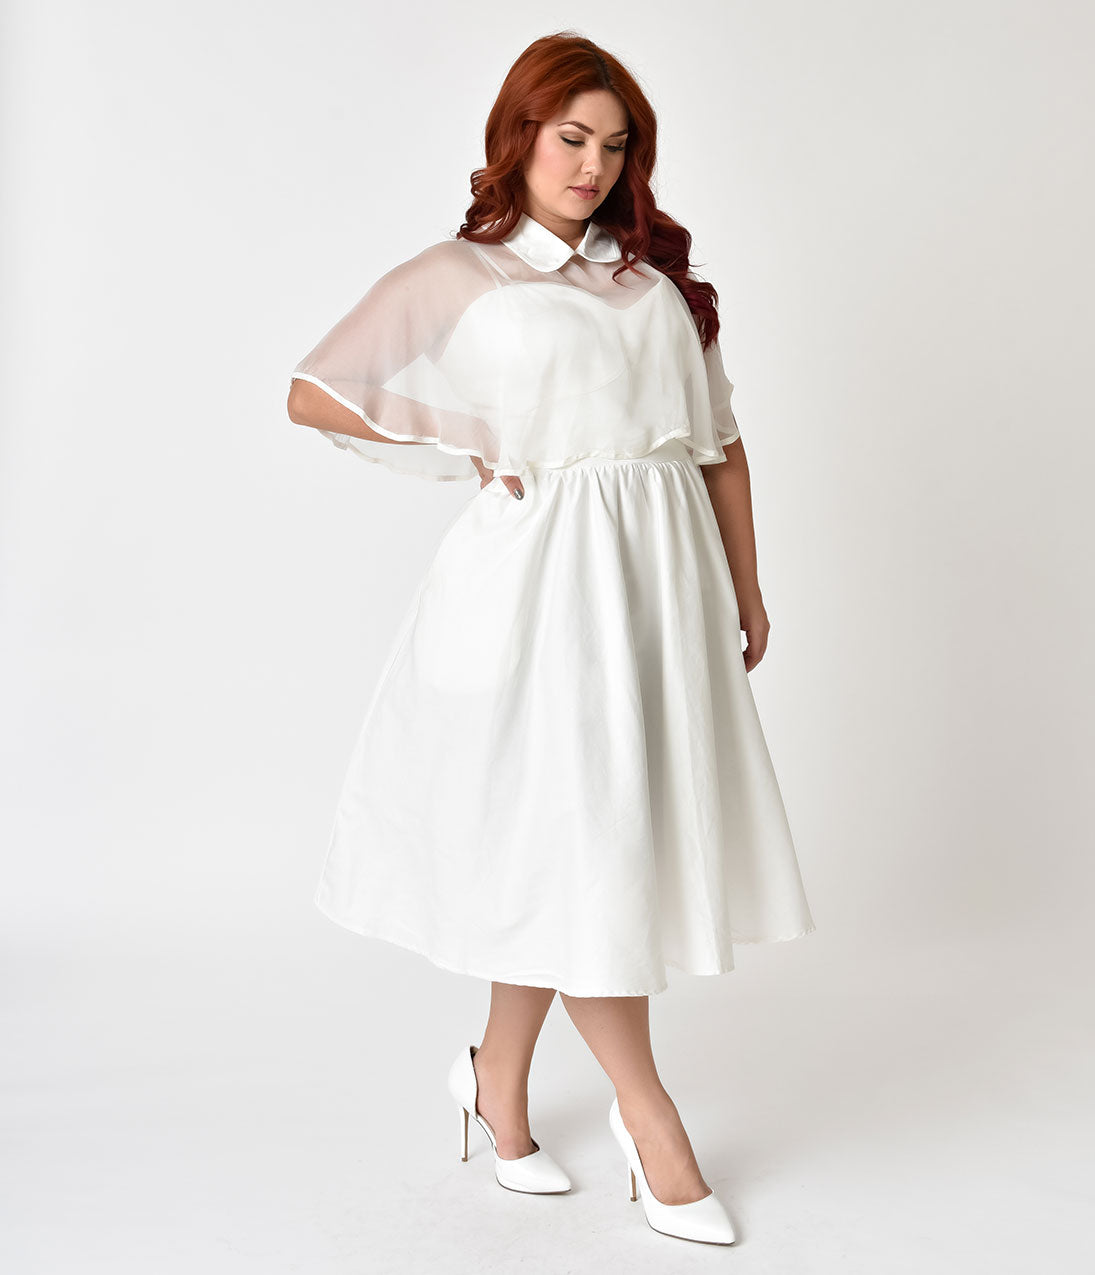 1940s Style Wedding Dresses | Classic Wedding Dresses Unique Vintage Plus Size 1940s White Brushed Cotton Luna Swing Dress  Mesh Capelet $118.00 AT vintagedancer.com